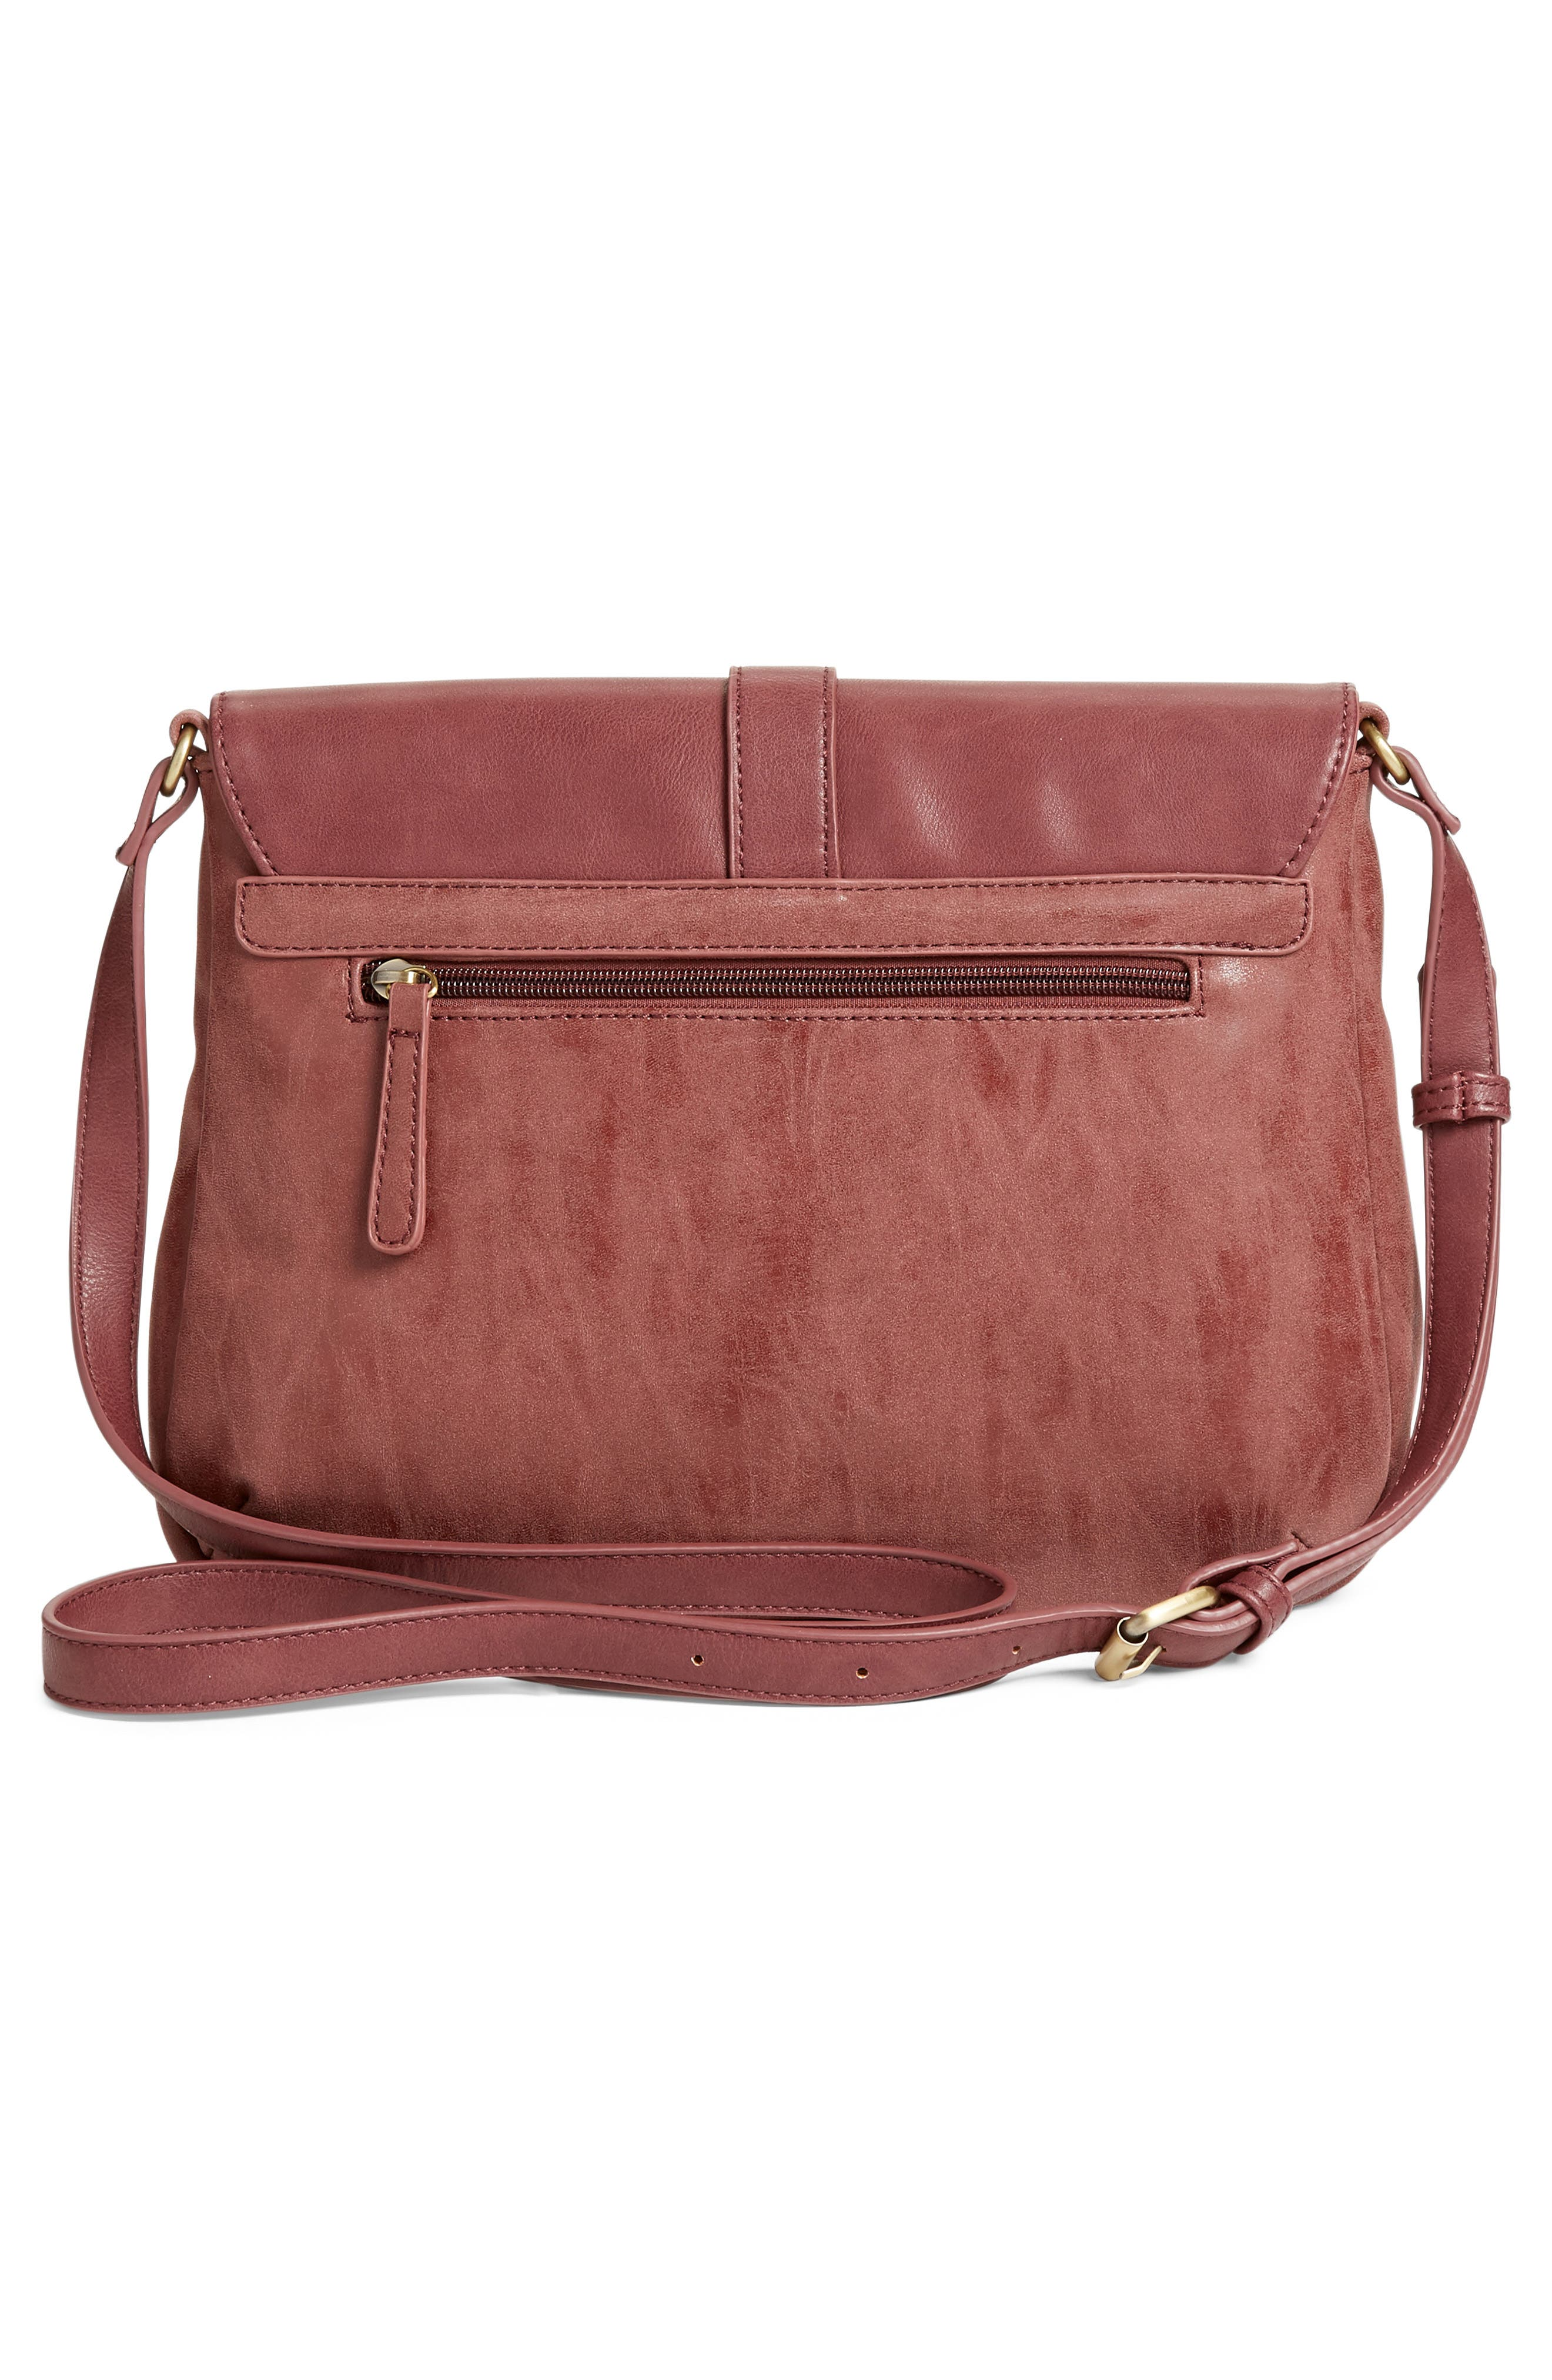 Alternate Image 3  - Emperia Saydie Tassel Faux Leather Crossbody Bag (Special Purchase)